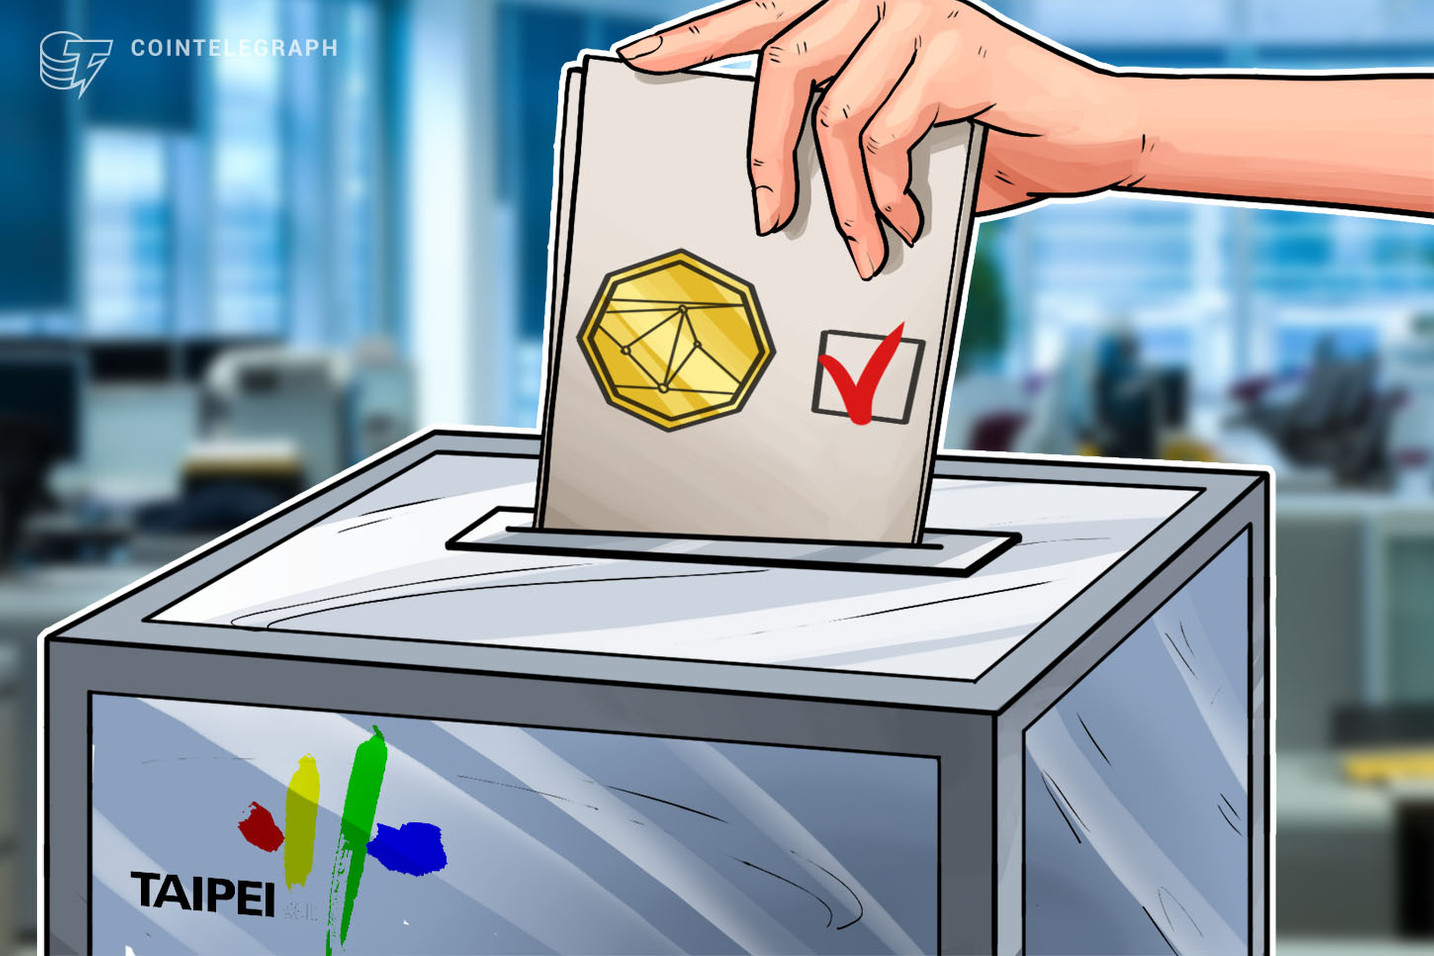 Crypto Exchange CEO Runs For Mayor Of Taipei To Make It Asia's 'Pioneer Blockchain City'